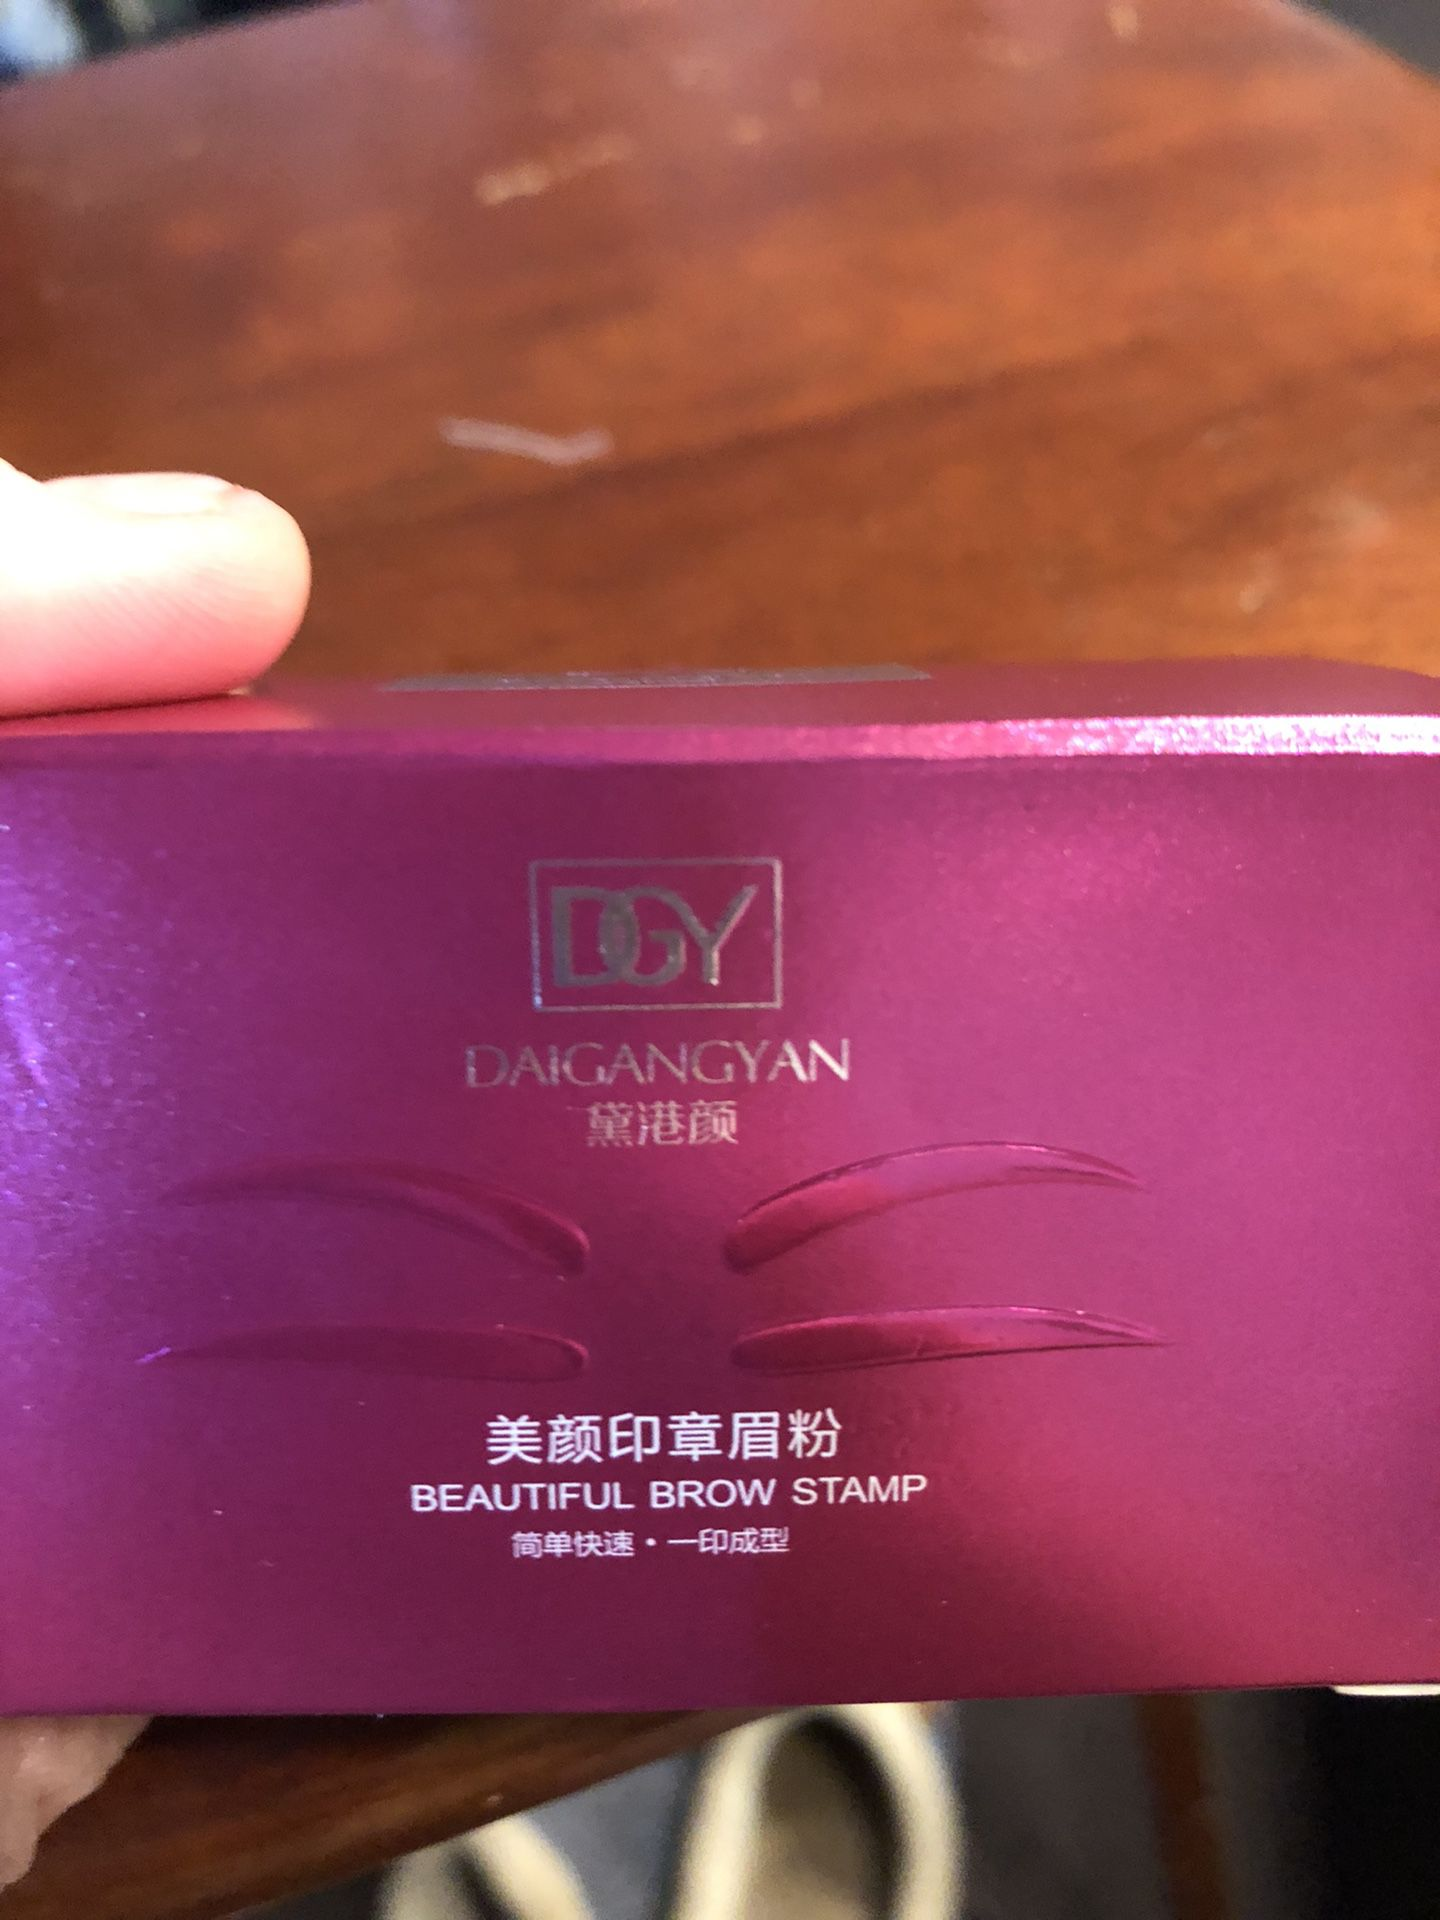 2 BROWN COMPLETE SETS  Of Beautiful Brow Stamp Daigangyan